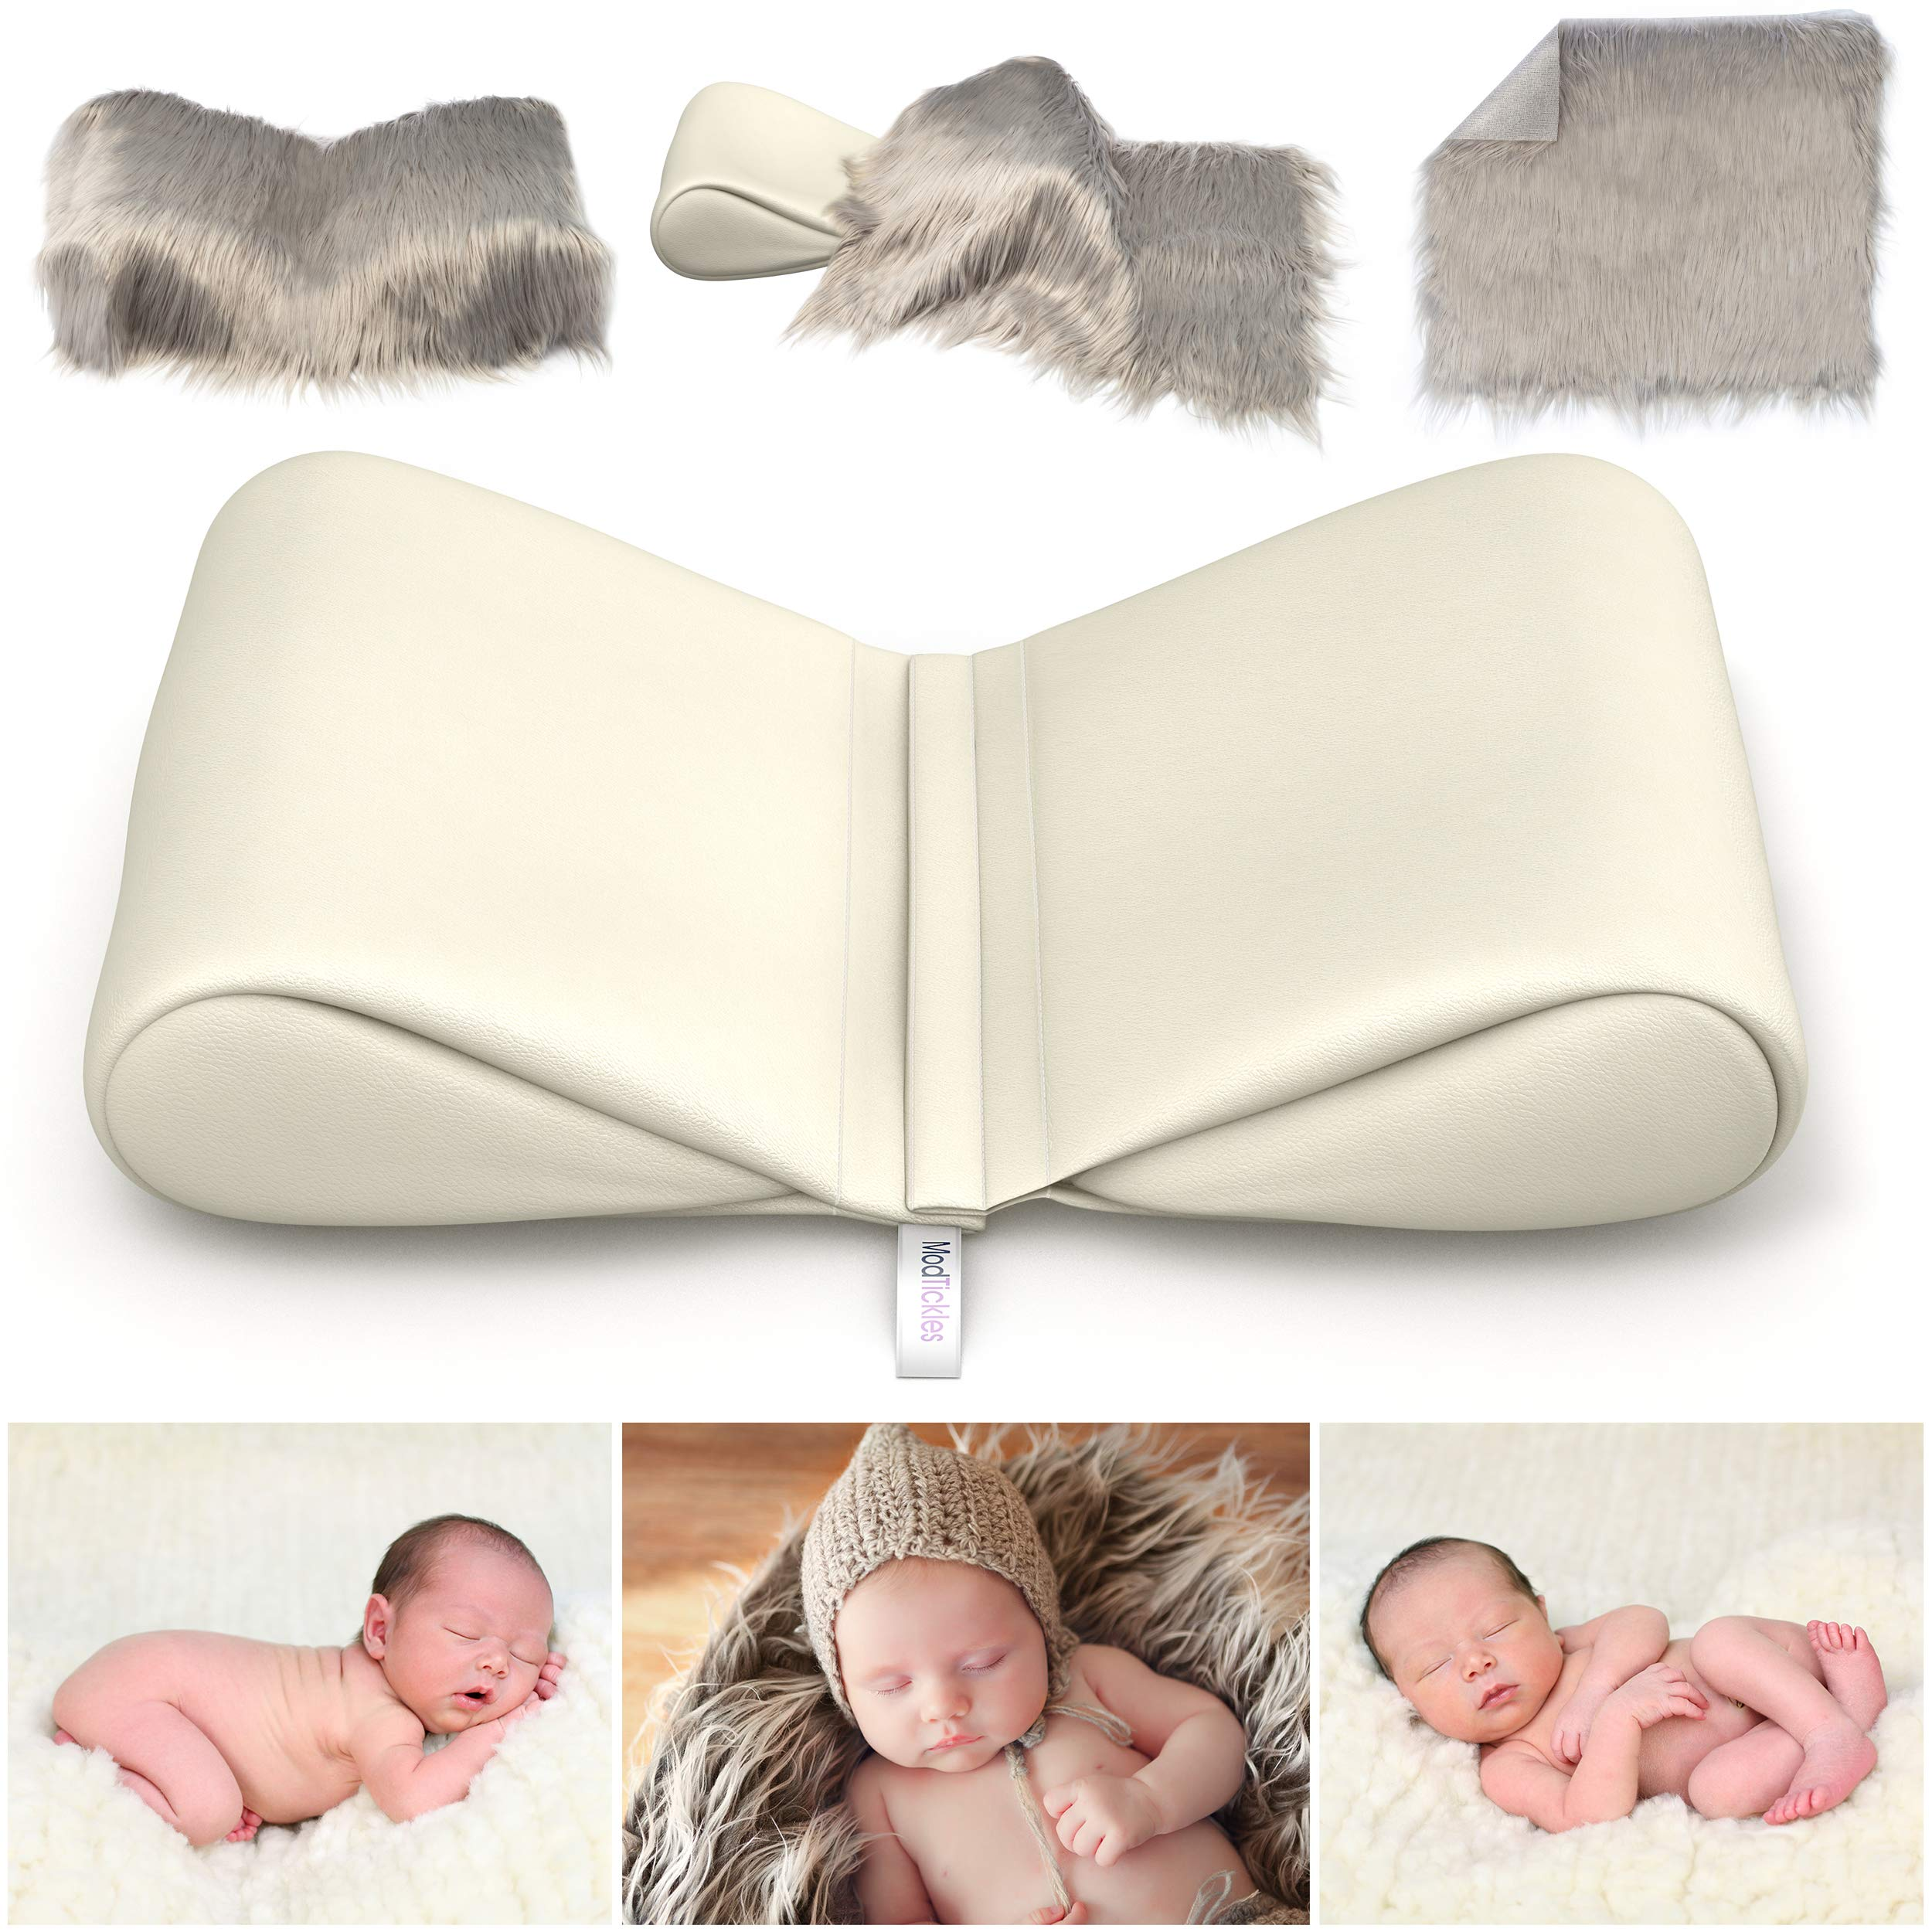 Newborn Photography Props Bundle - Infant Butterfly Posing Pillows & Soft Fur Mat - Basket Filler & Poser for Babies - DIY BabyPhotoshoot for Professional Photos - Wedge & Blanket - by ModTickles by ModTickles